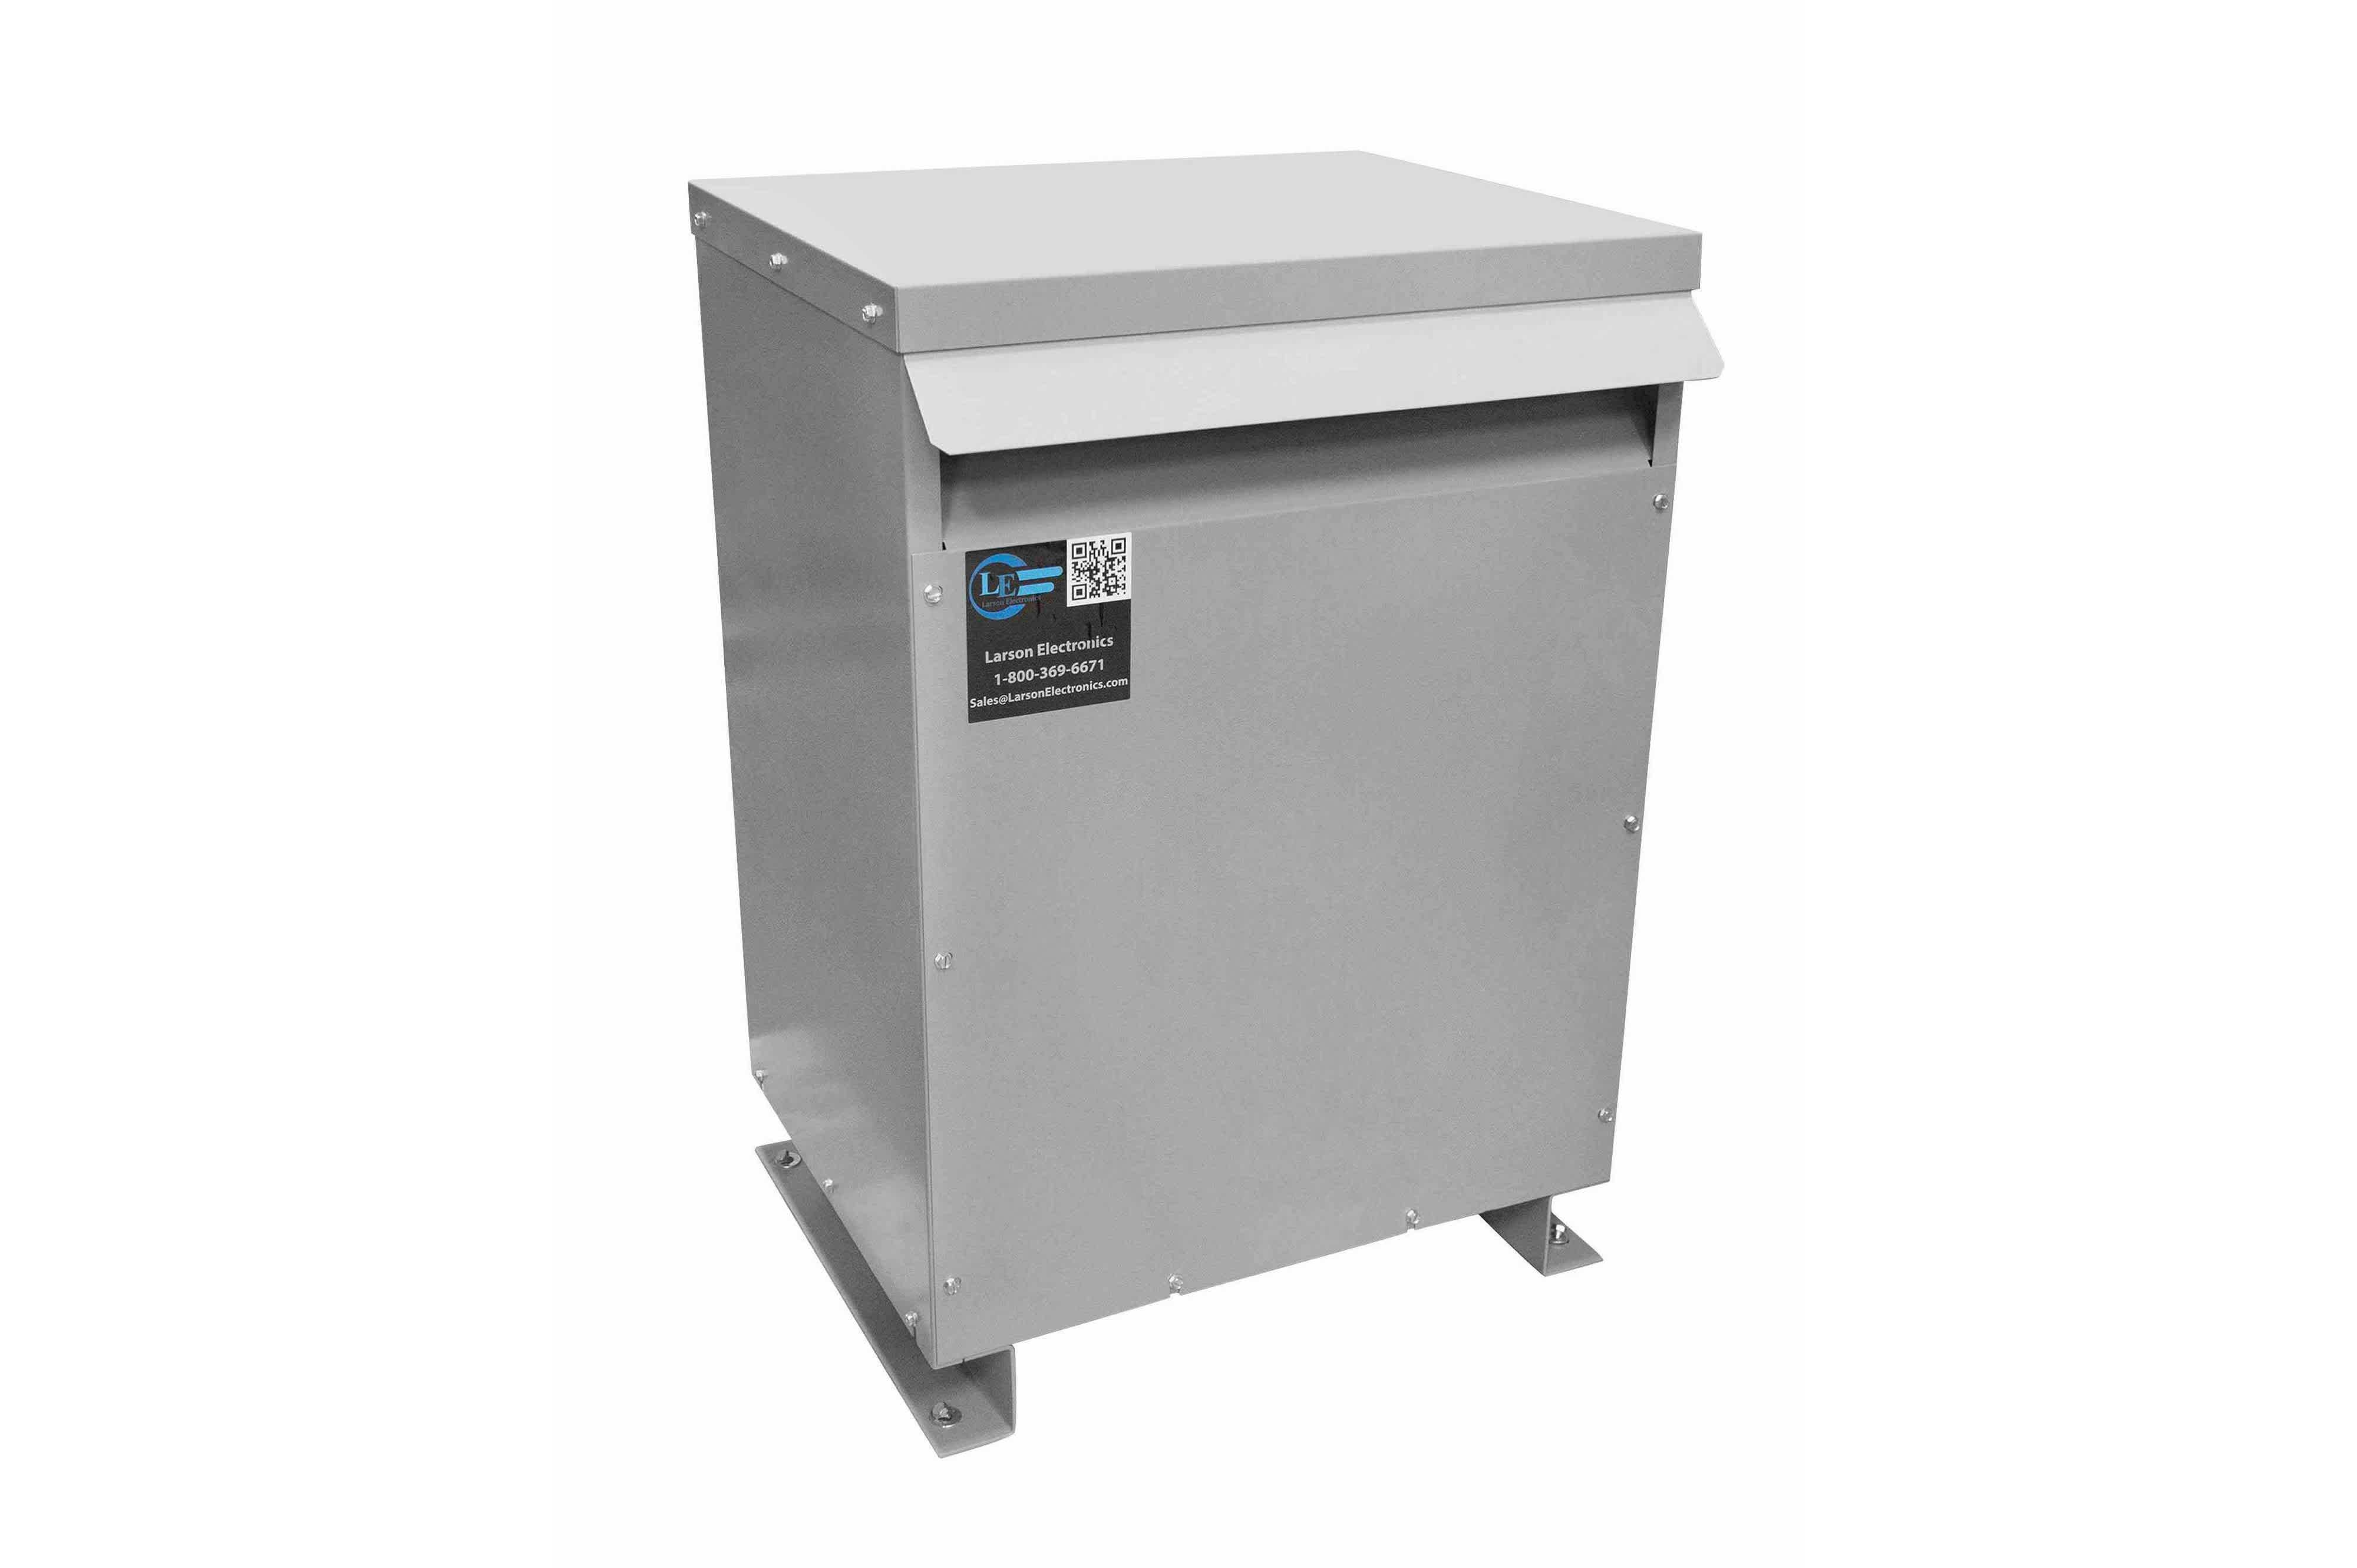 13 kVA 3PH Isolation Transformer, 600V Wye Primary, 380Y/220 Wye-N Secondary, N3R, Ventilated, 60 Hz